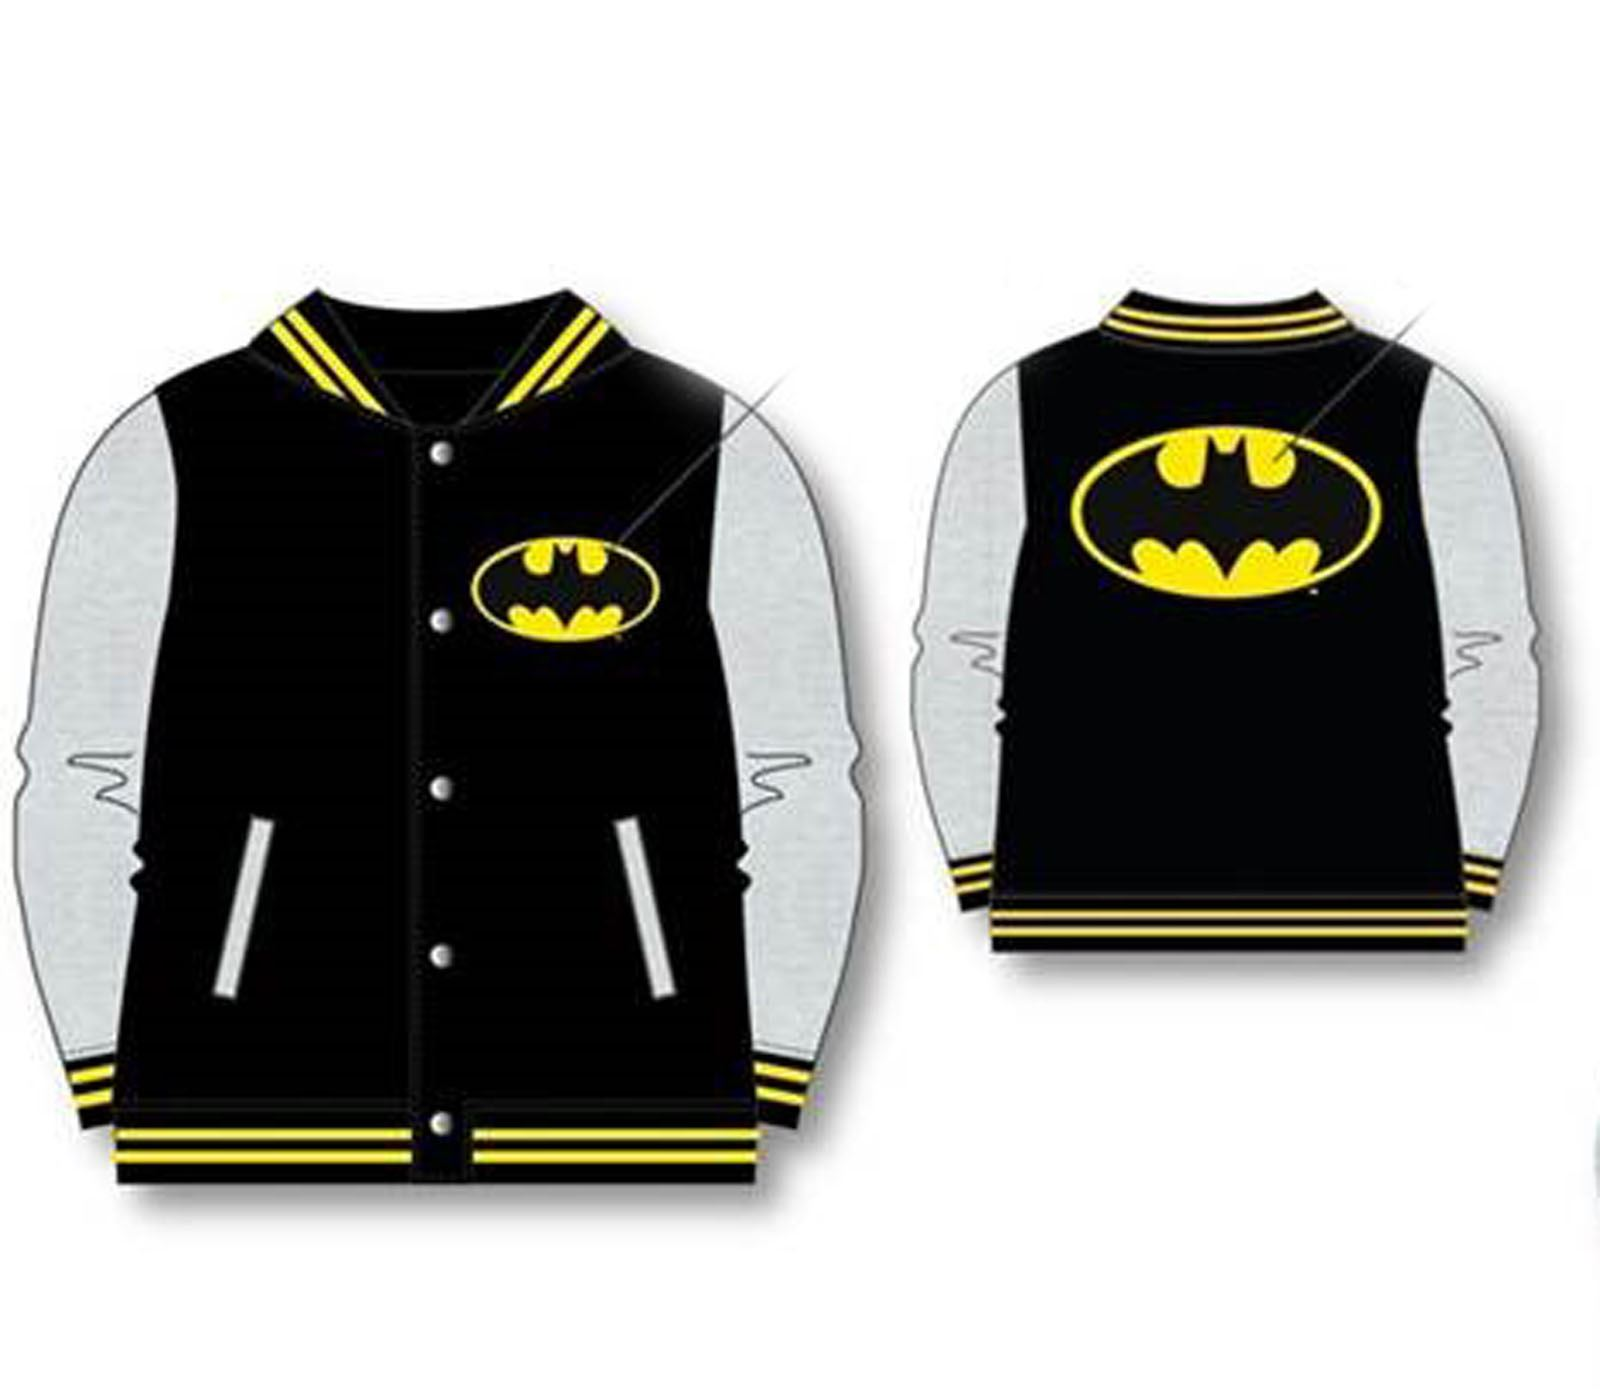 24ae5aad OFFICIAL KIDS BOYS BATMAN SUPERMAN BASEBALL JACKET COAT VARSITY ...